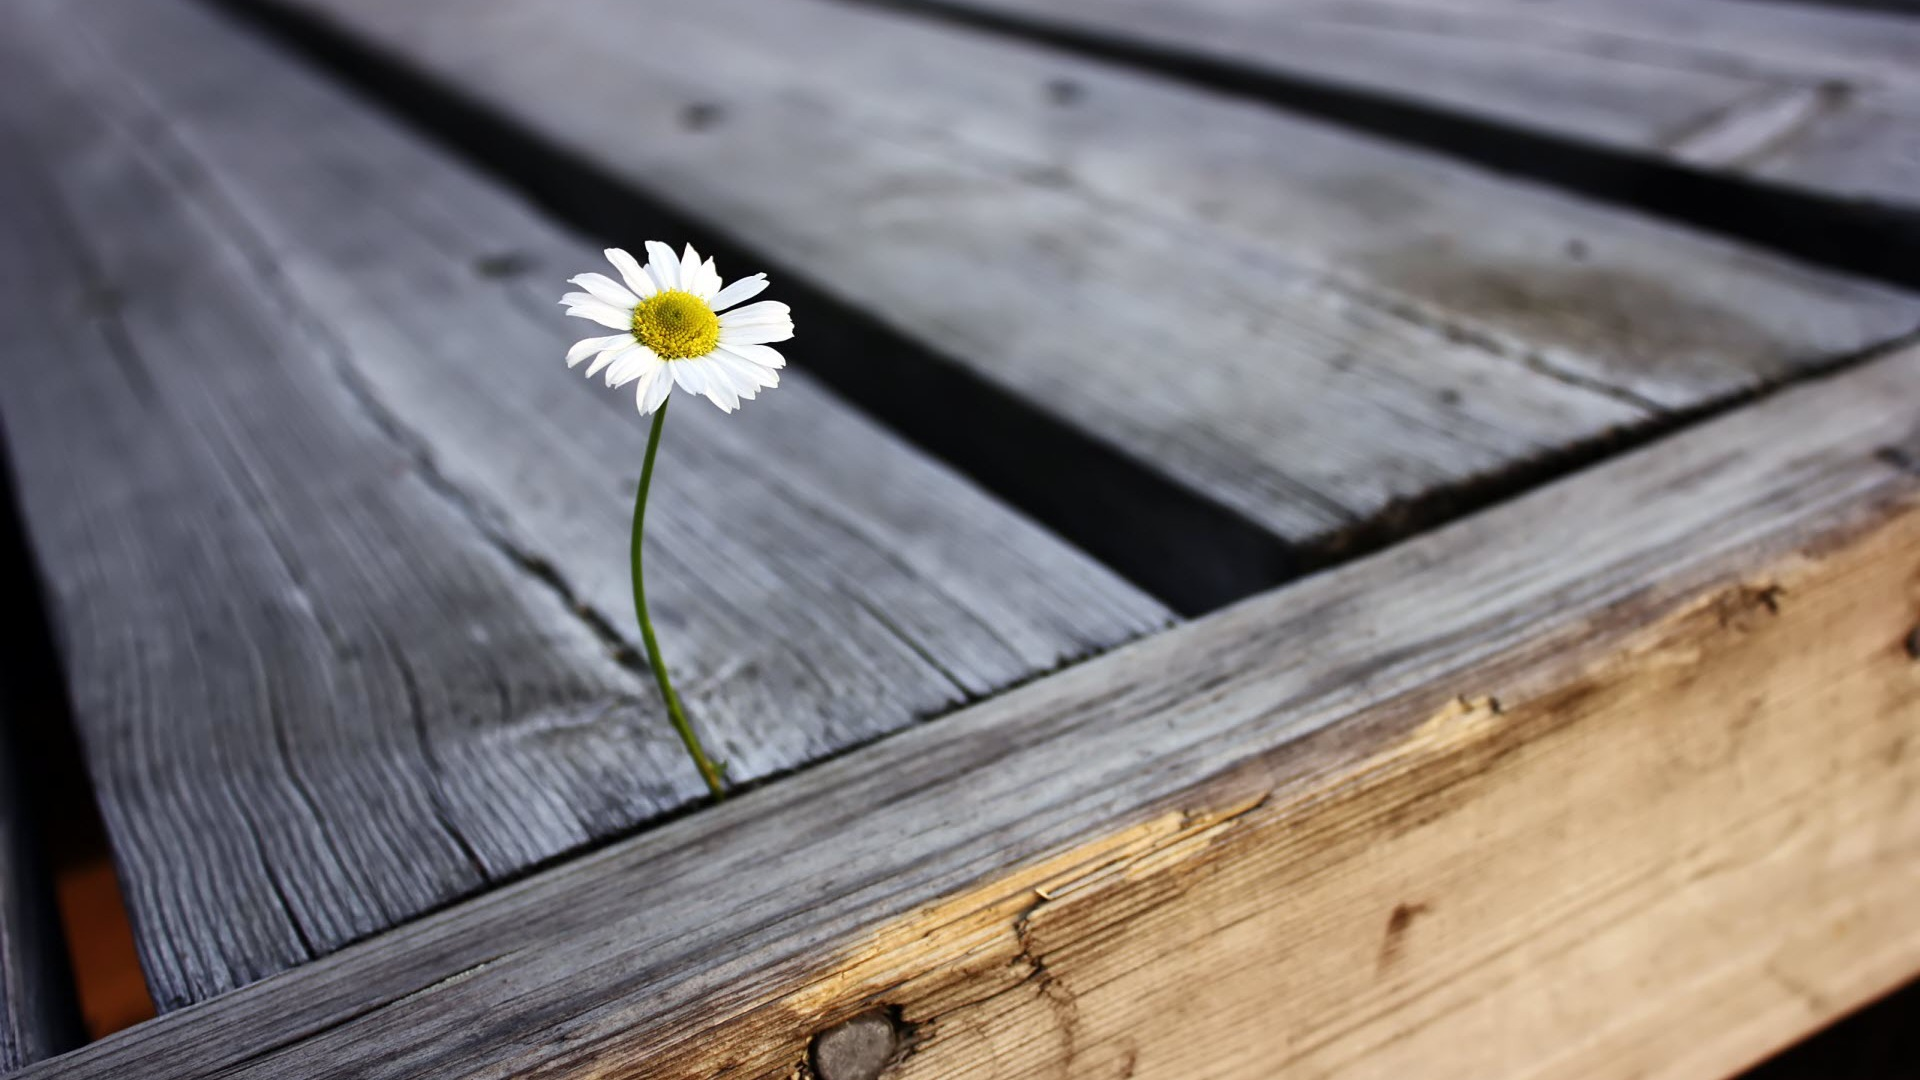 Daisy-in-a-cracked-wood-panel-wallpaper-wp3404409